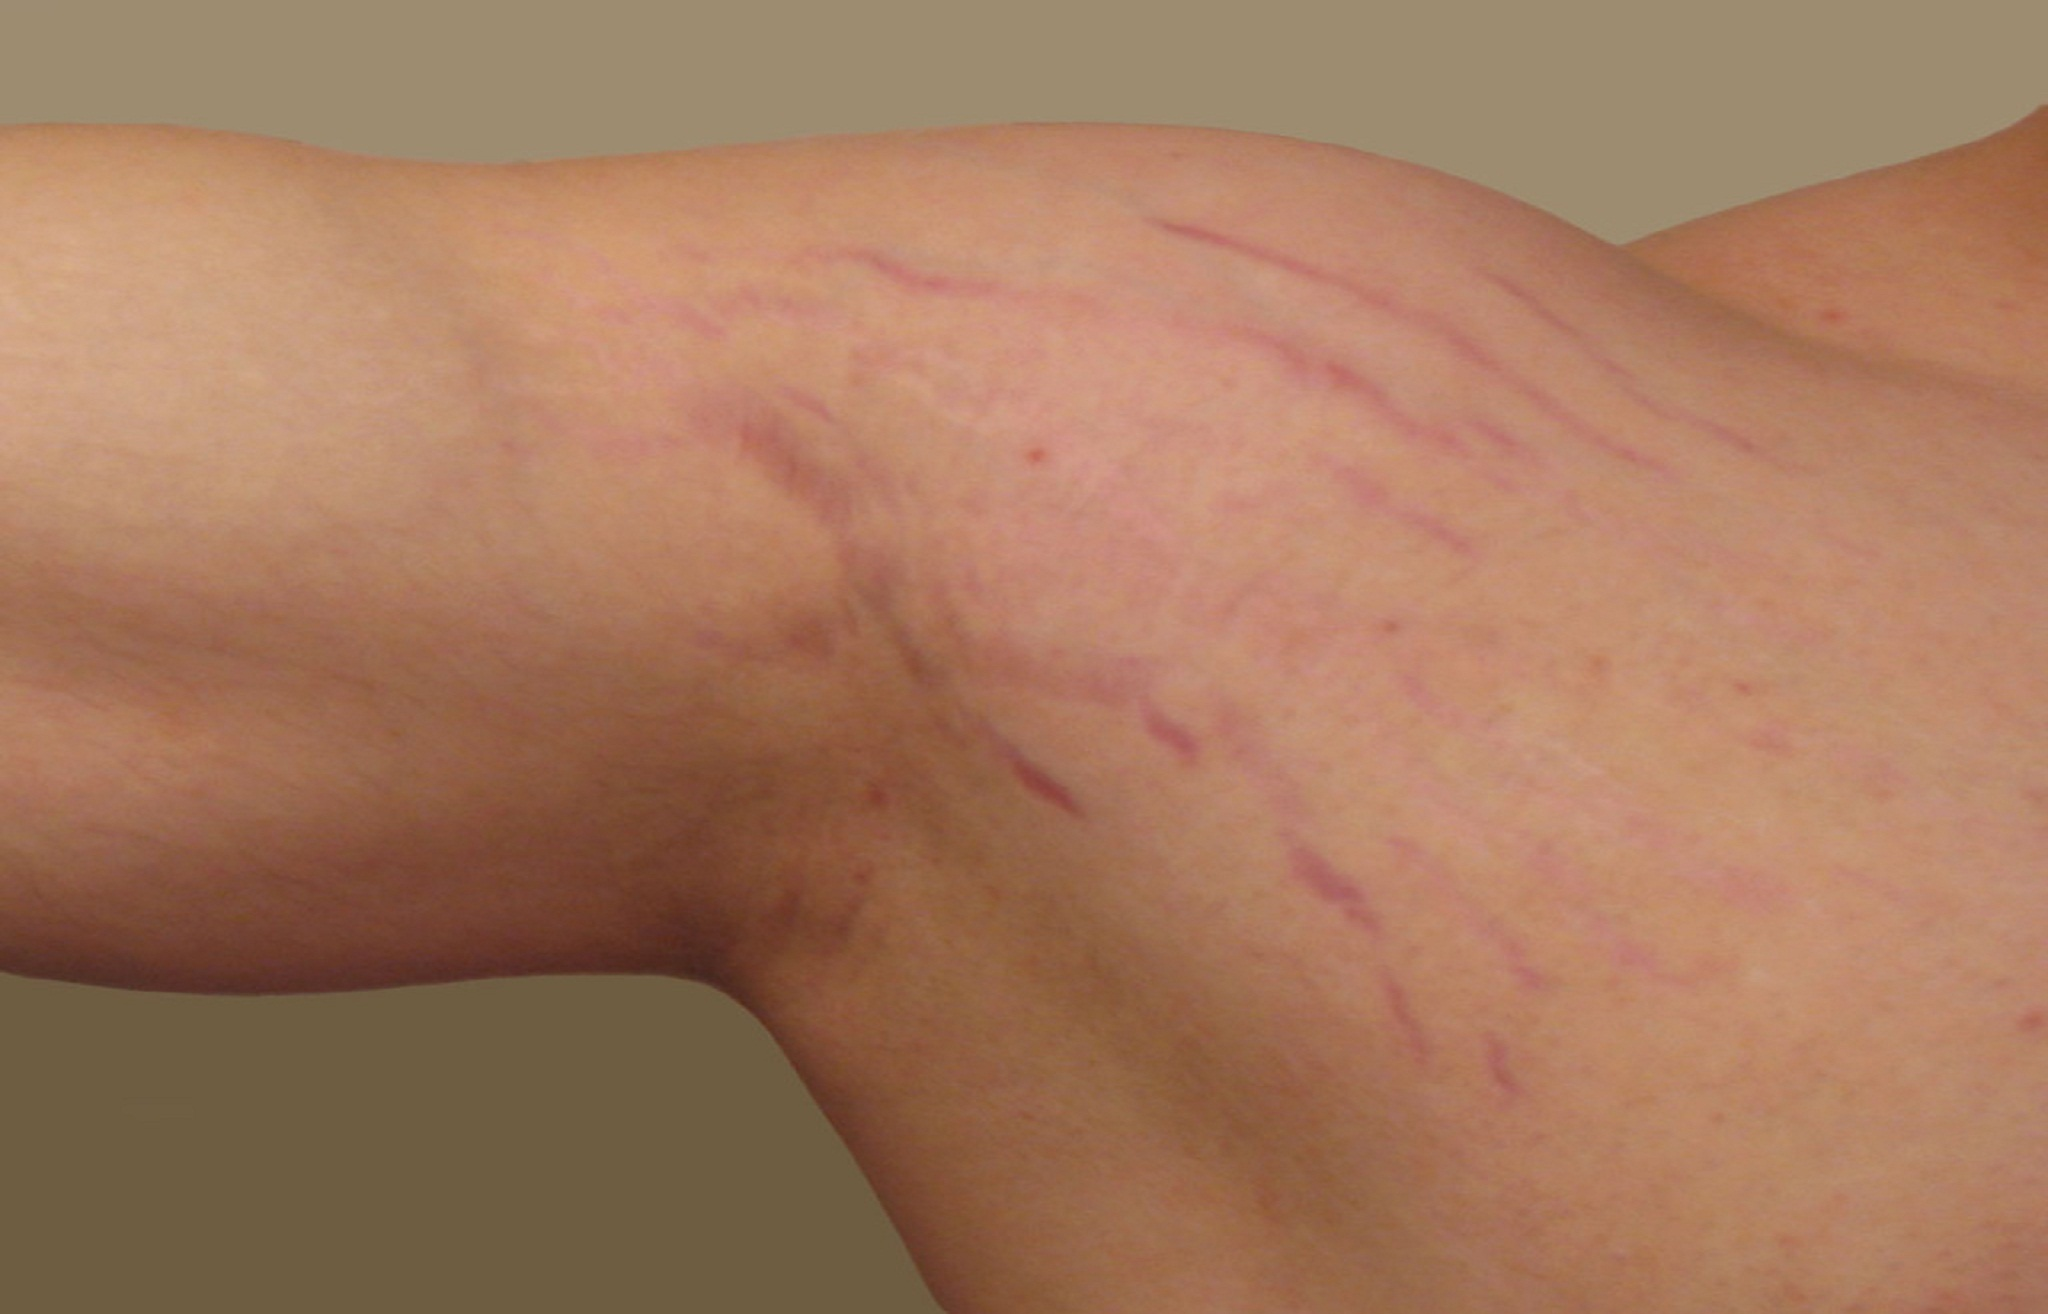 Discover What You Don't Know Stretch Marks Treatment Cost That Could Save A Fortune